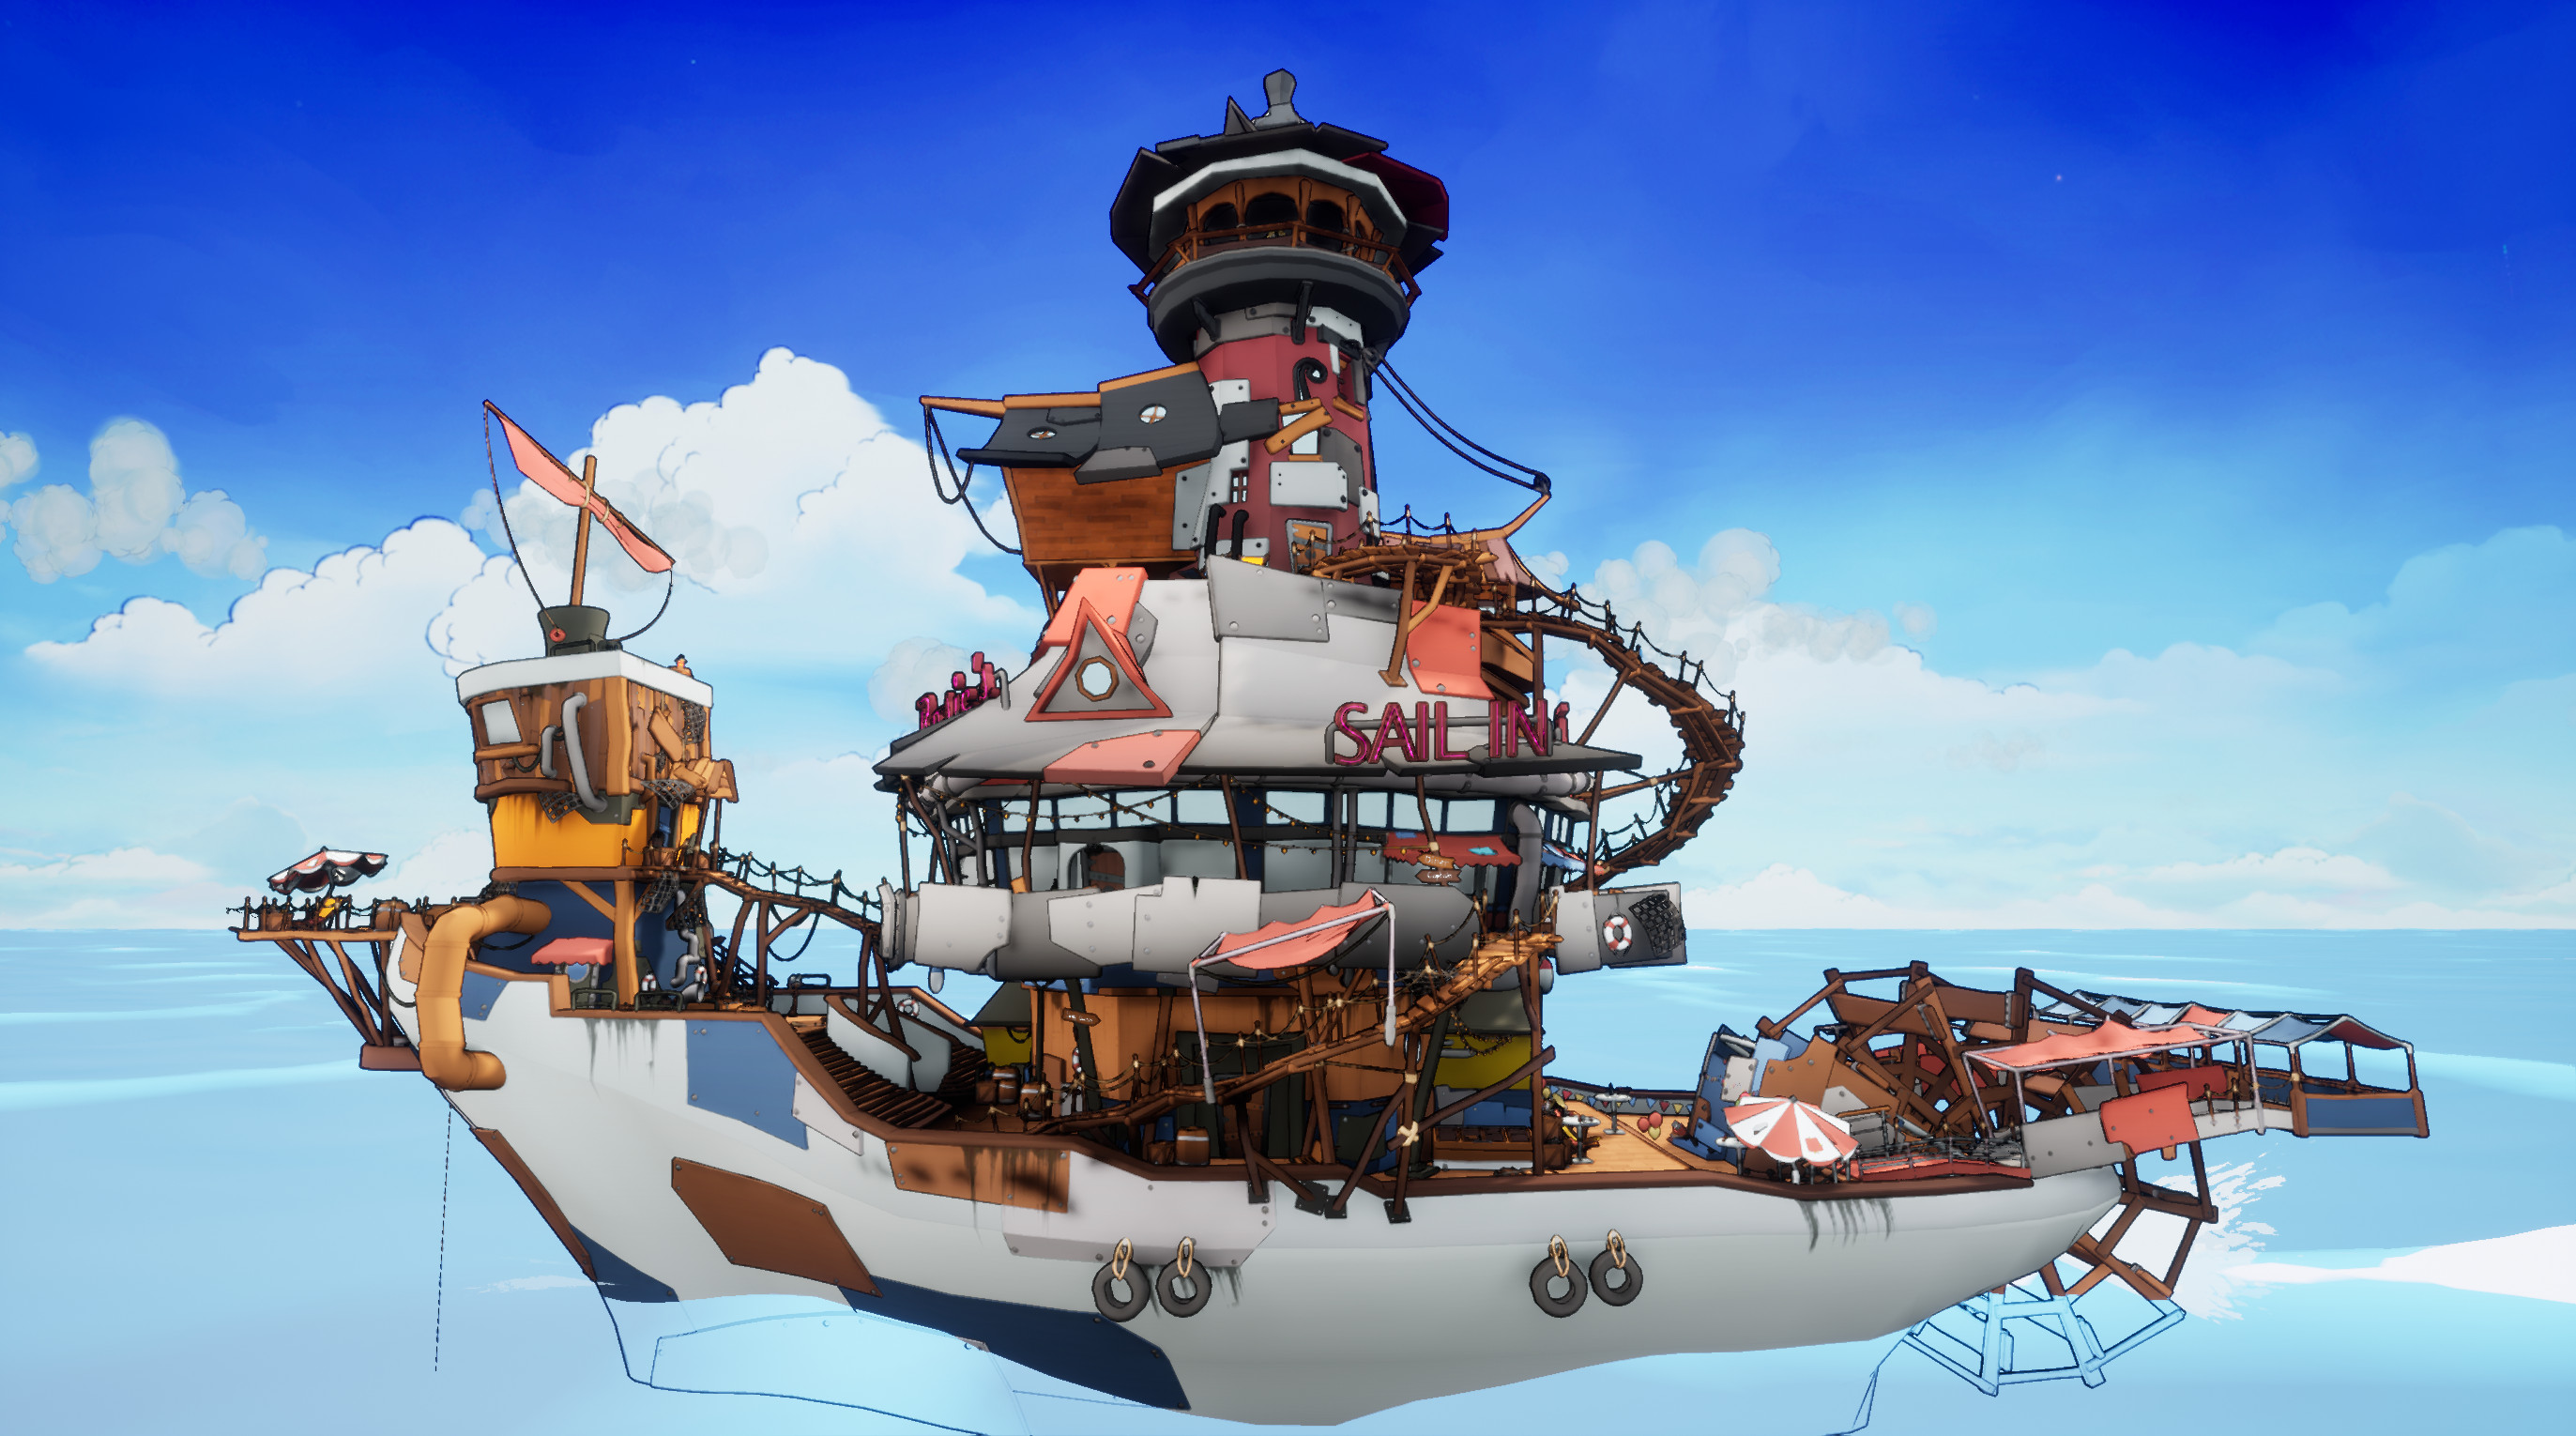 The overall ship that was made during the project, I was partly responsible for the overall modeling.